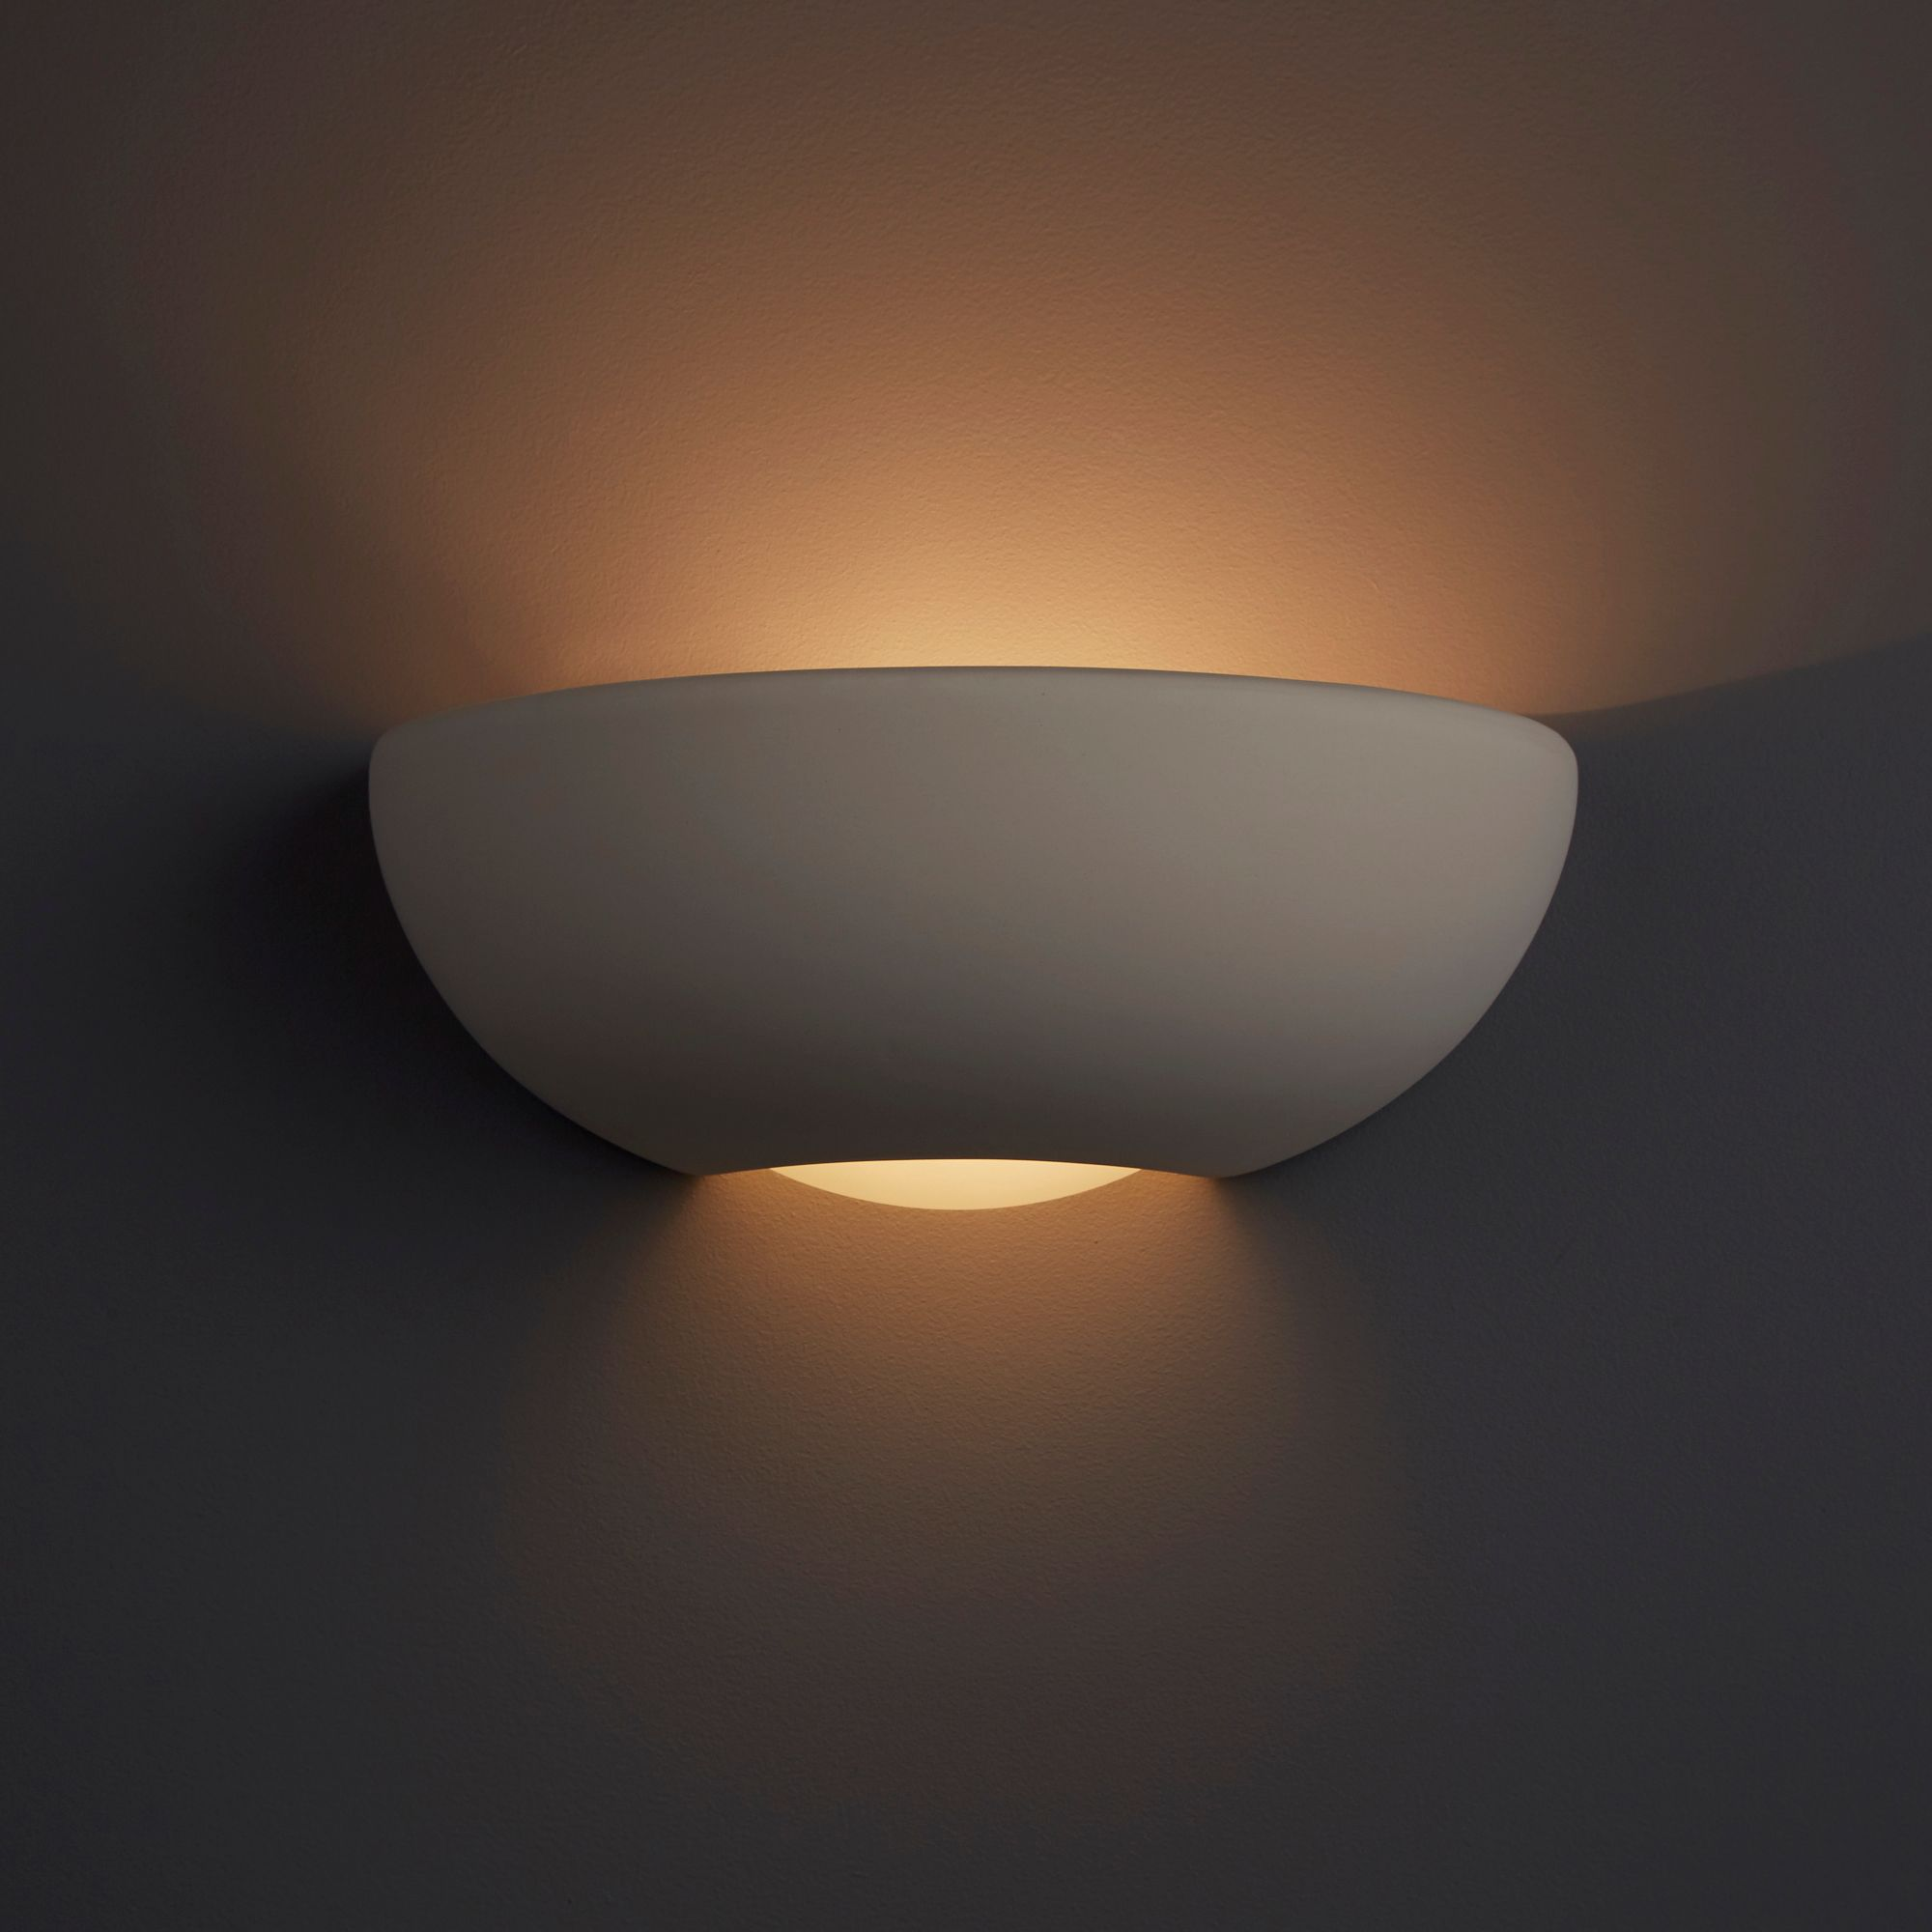 Photos Of Wall Lights : Volos Sphere White Single Wall Light Departments DIY at B&Q